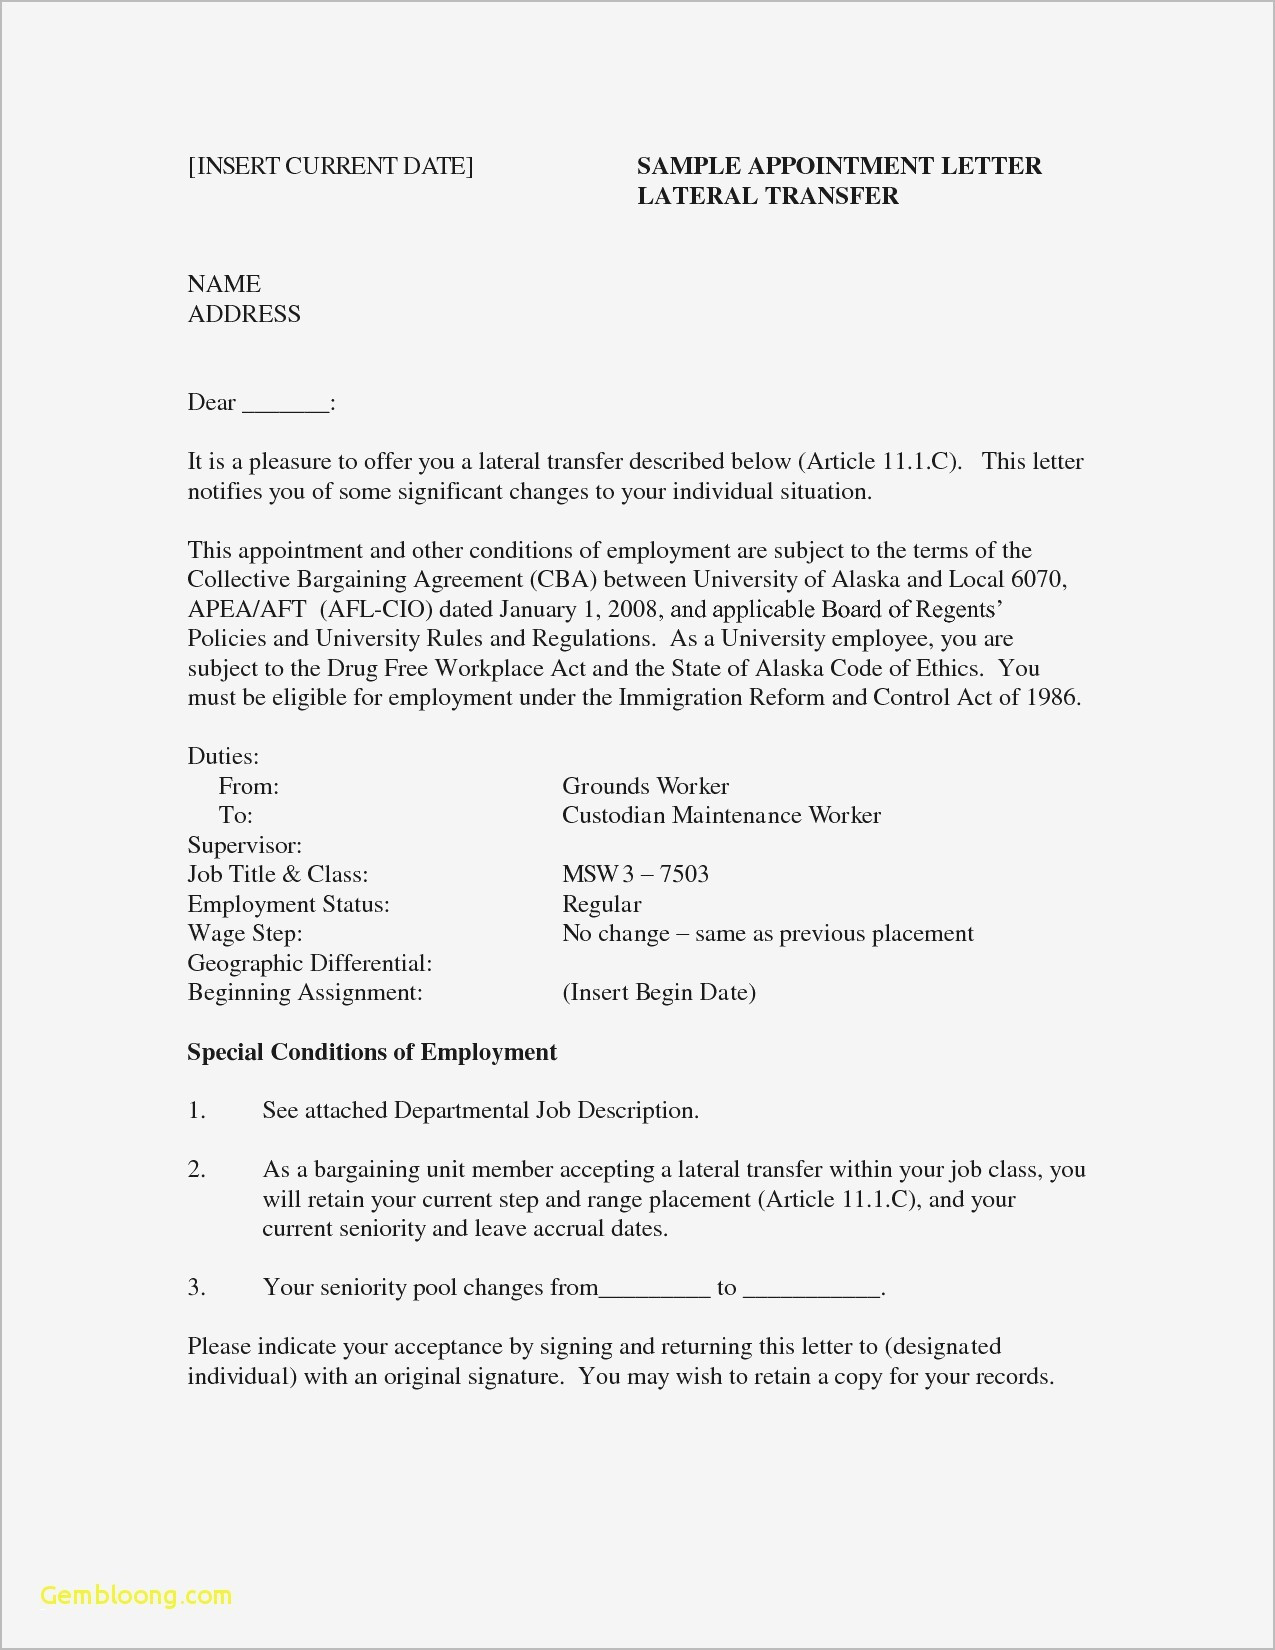 professional acting resume template Collection-Sample Chronological Resume Format Free Downloads Best Actor Resume Unique Actor Resumes 0d Acting Resume Format 10-p